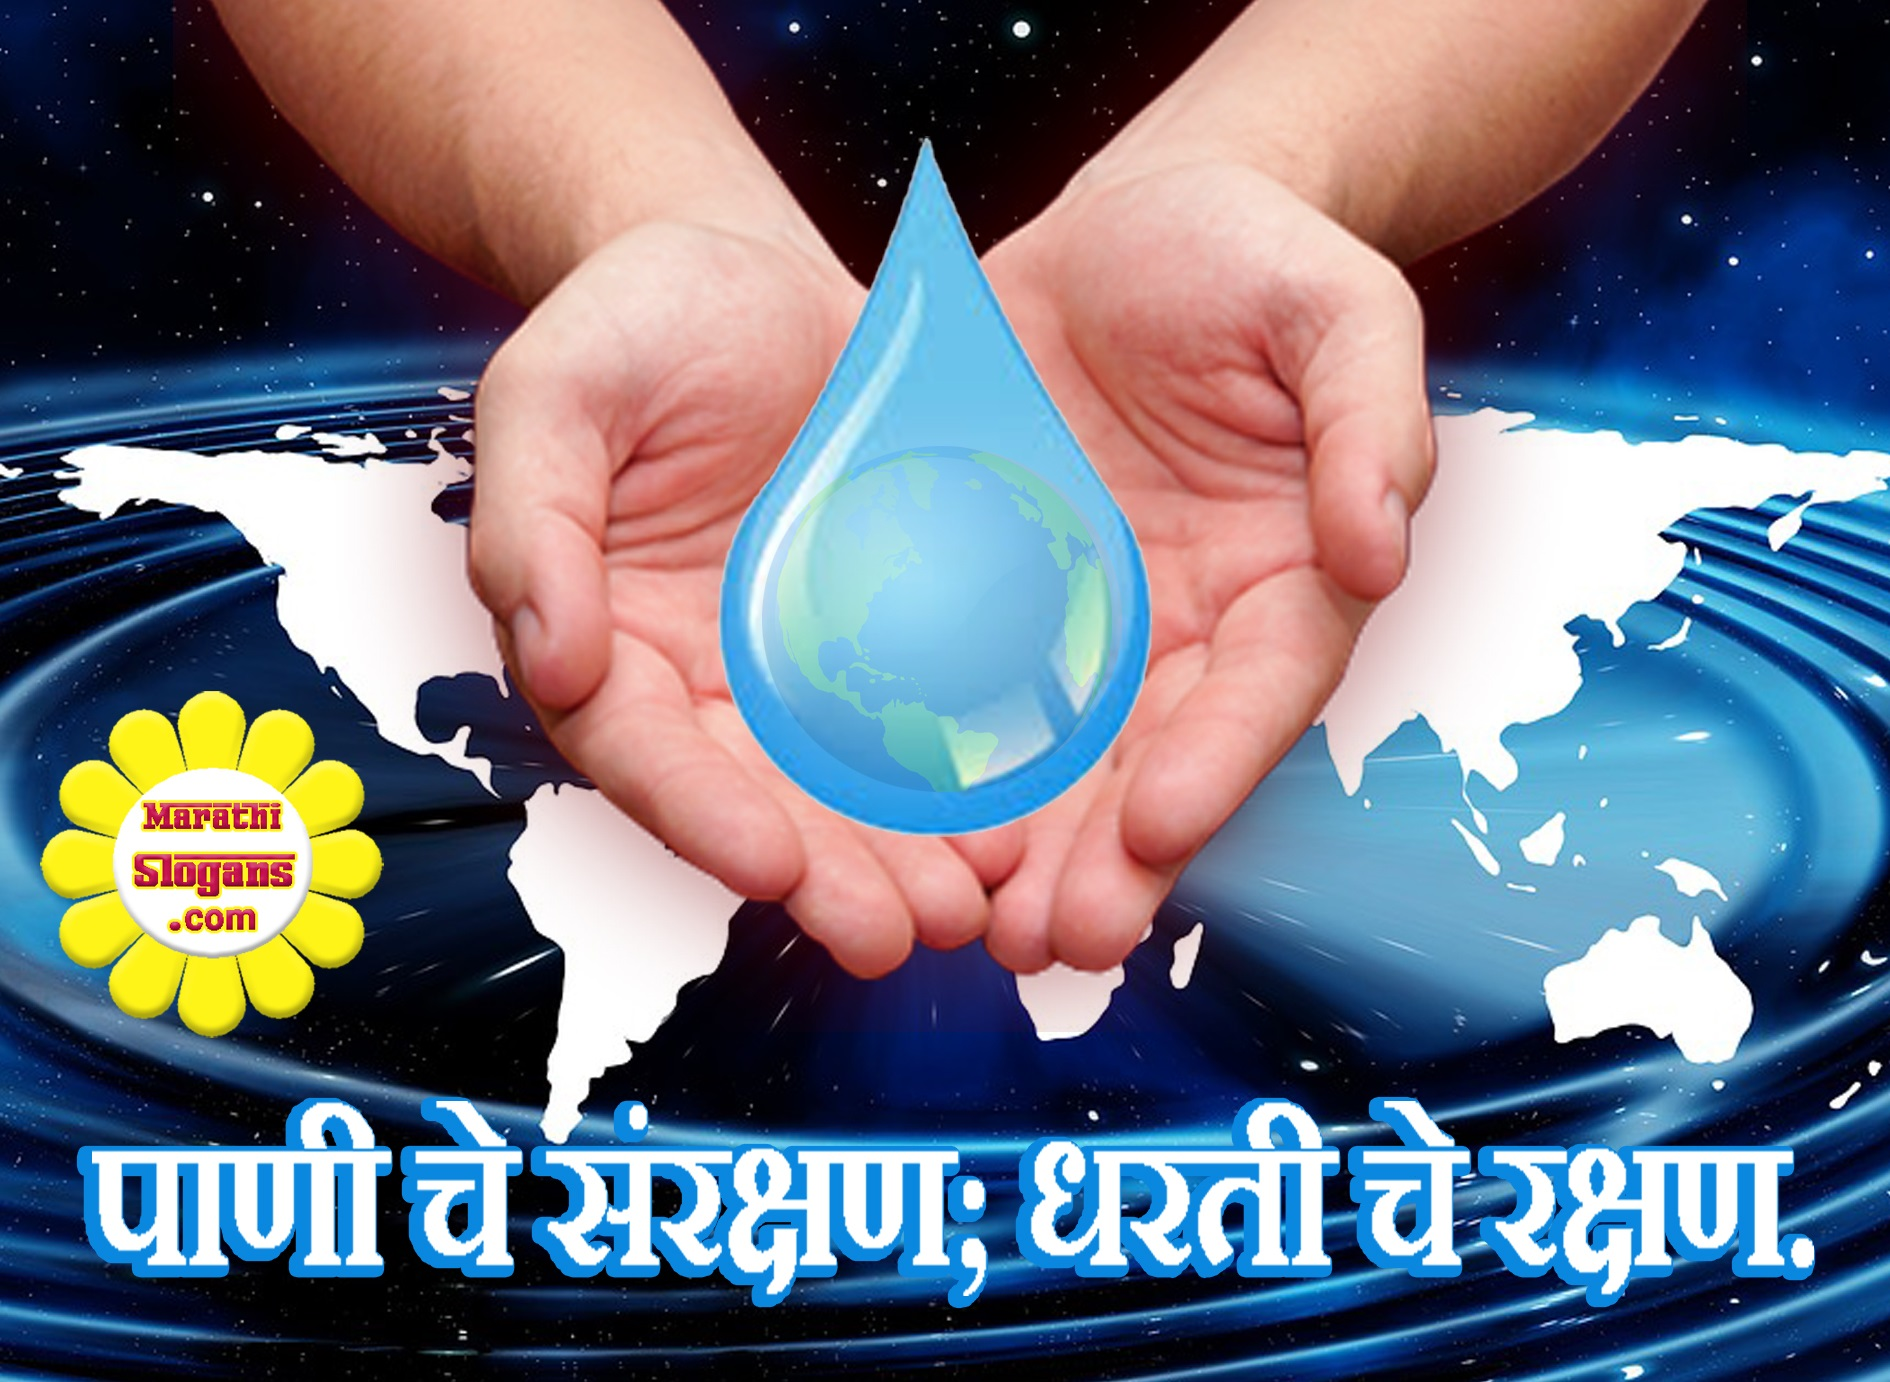 save water essay in marathi Essay on water is life in marathi language  5 lines on save water, essay on why we should save water excellent essay on save water - duration: 4:26.